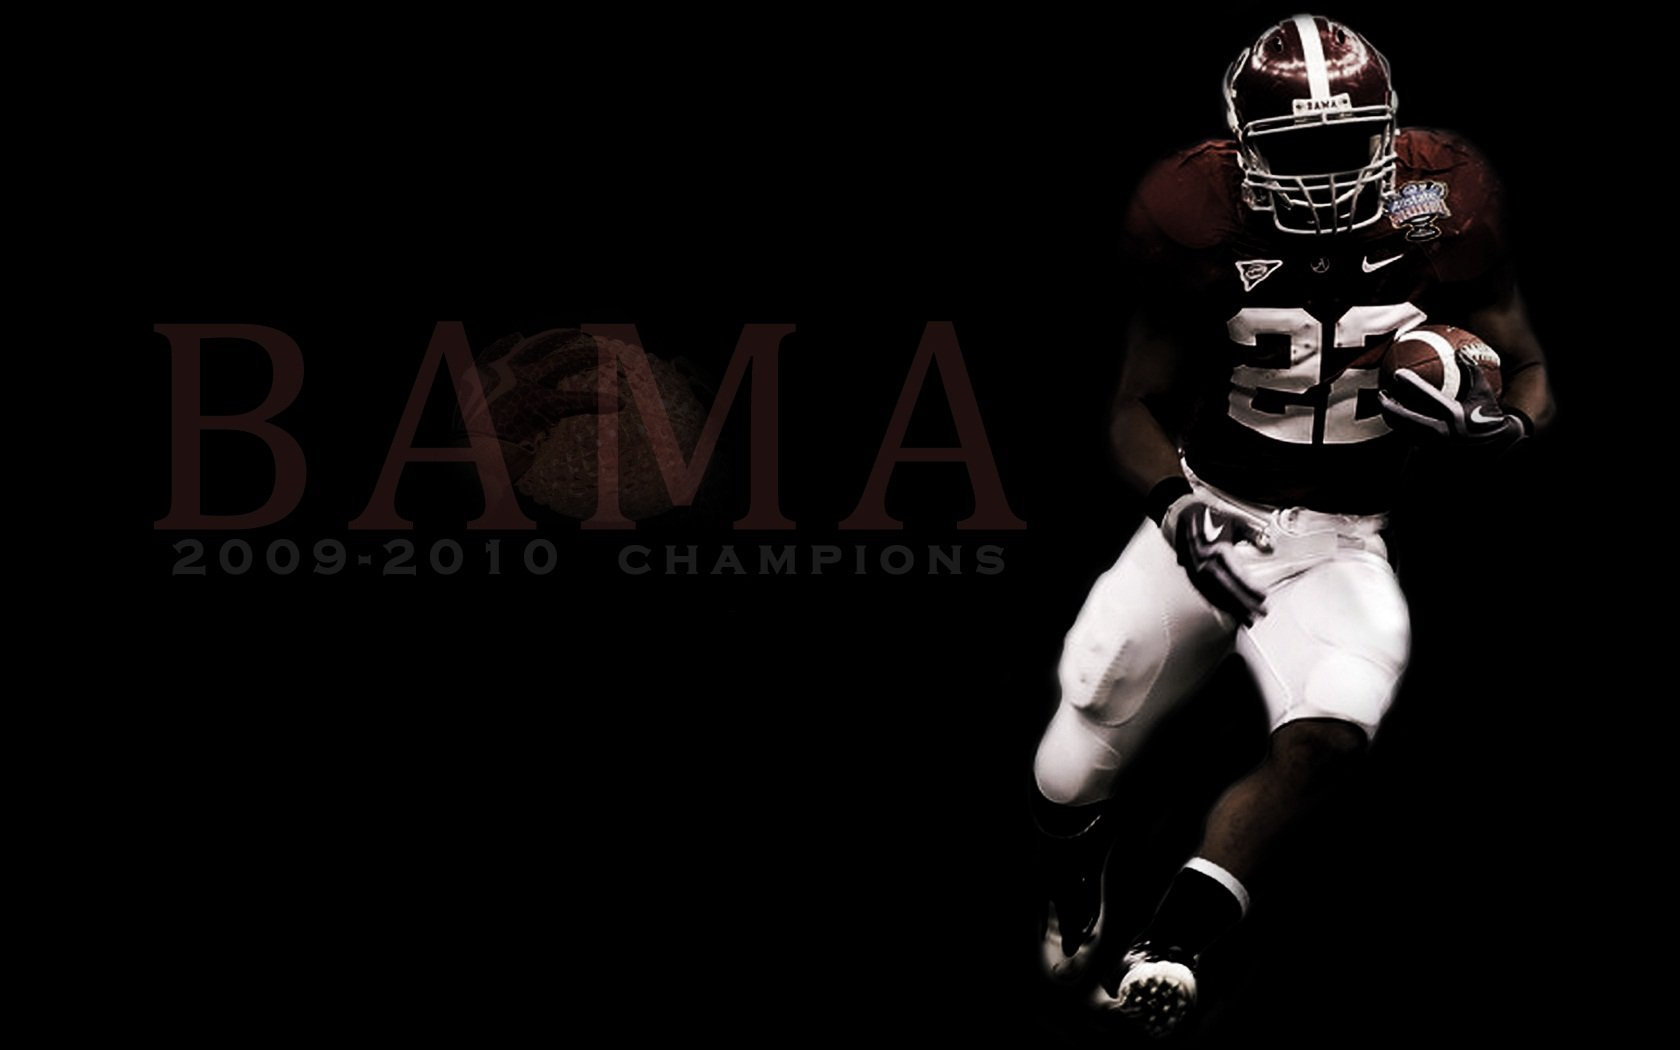 Alabama Football Wallpapers Alabama Football Wallpaper 1680x1050